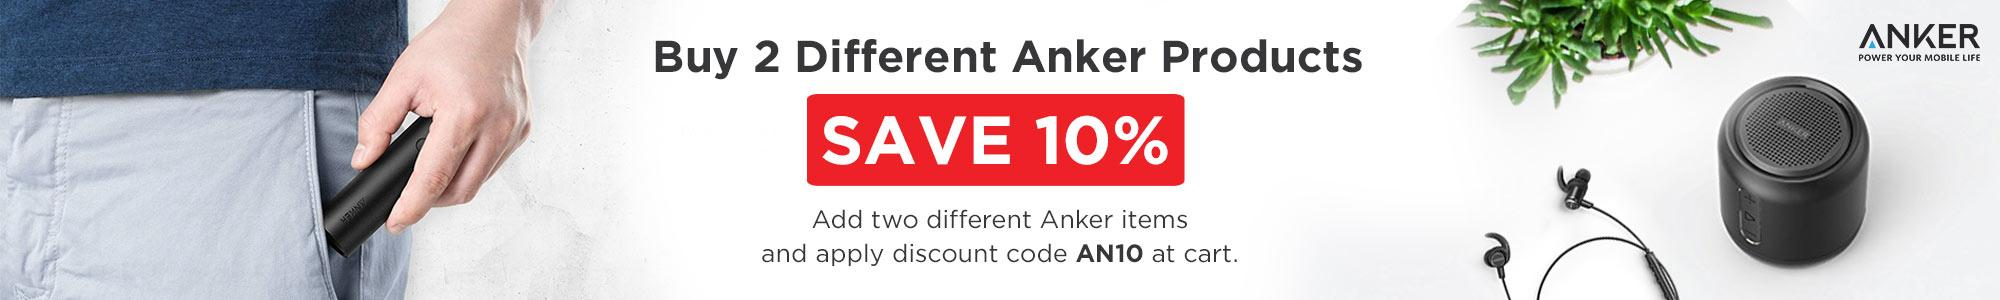 Buy 2 Different Anker Products Save 10%